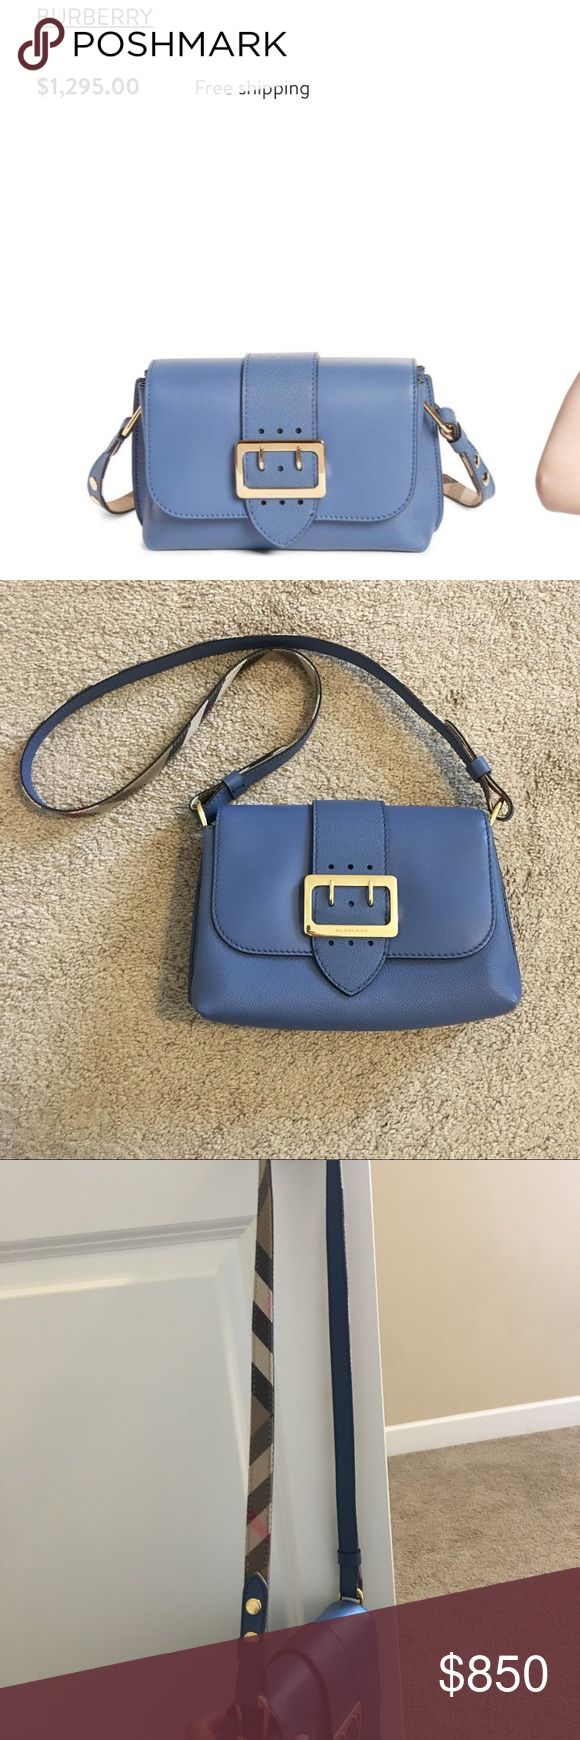 New Burberry small buckle leather crossbody bag 100% authentic and brand new! Color is slate blue. The style is small buckle leather crossbody bag. You can see additional stock pictures on Nordstrom! Retails for $1295!   Echoing a design element drawn from Burberry's famed trench, a gleaming buckle highlights a chic, compact crossbody that beautifully combines smooth and textured leathers. Magnetic snap-flap closure Adjustable crossbody strap Interior zip and wall pockets Burberry Bags…